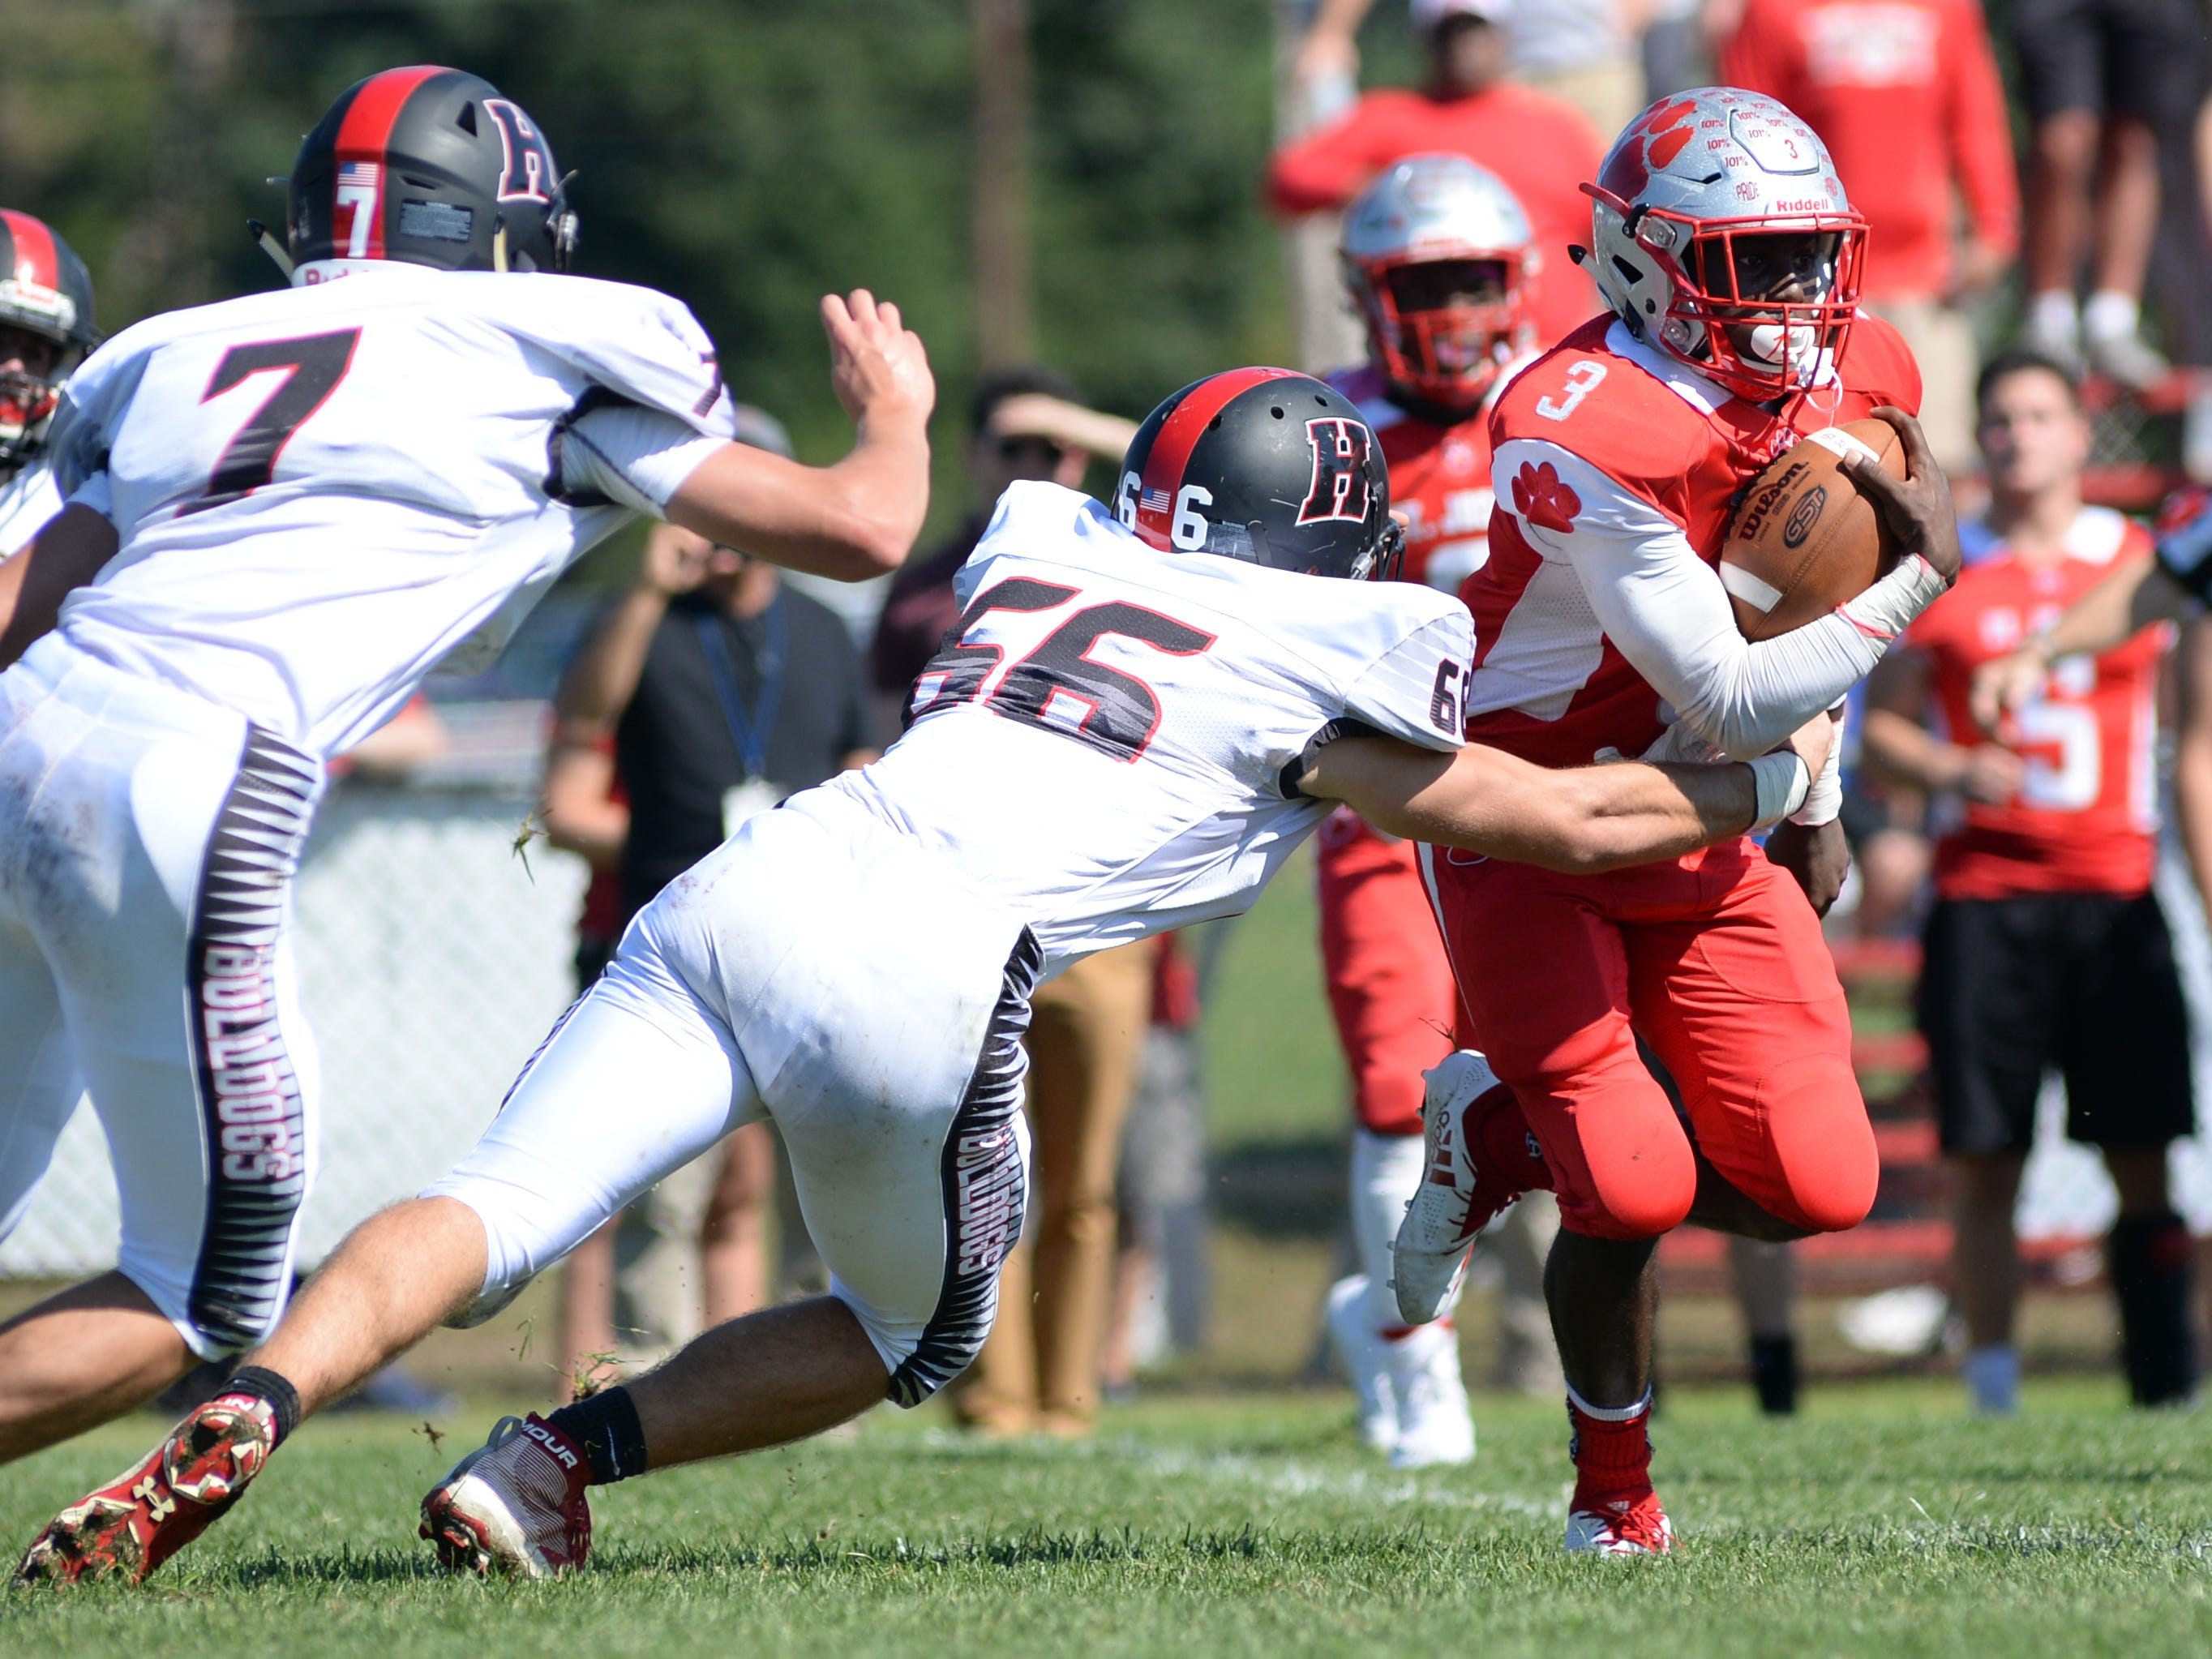 St. Joseph's Jada Byers is tackled is the backfield during Saturday's game against Haddonfield, Sept. 29, 2018.